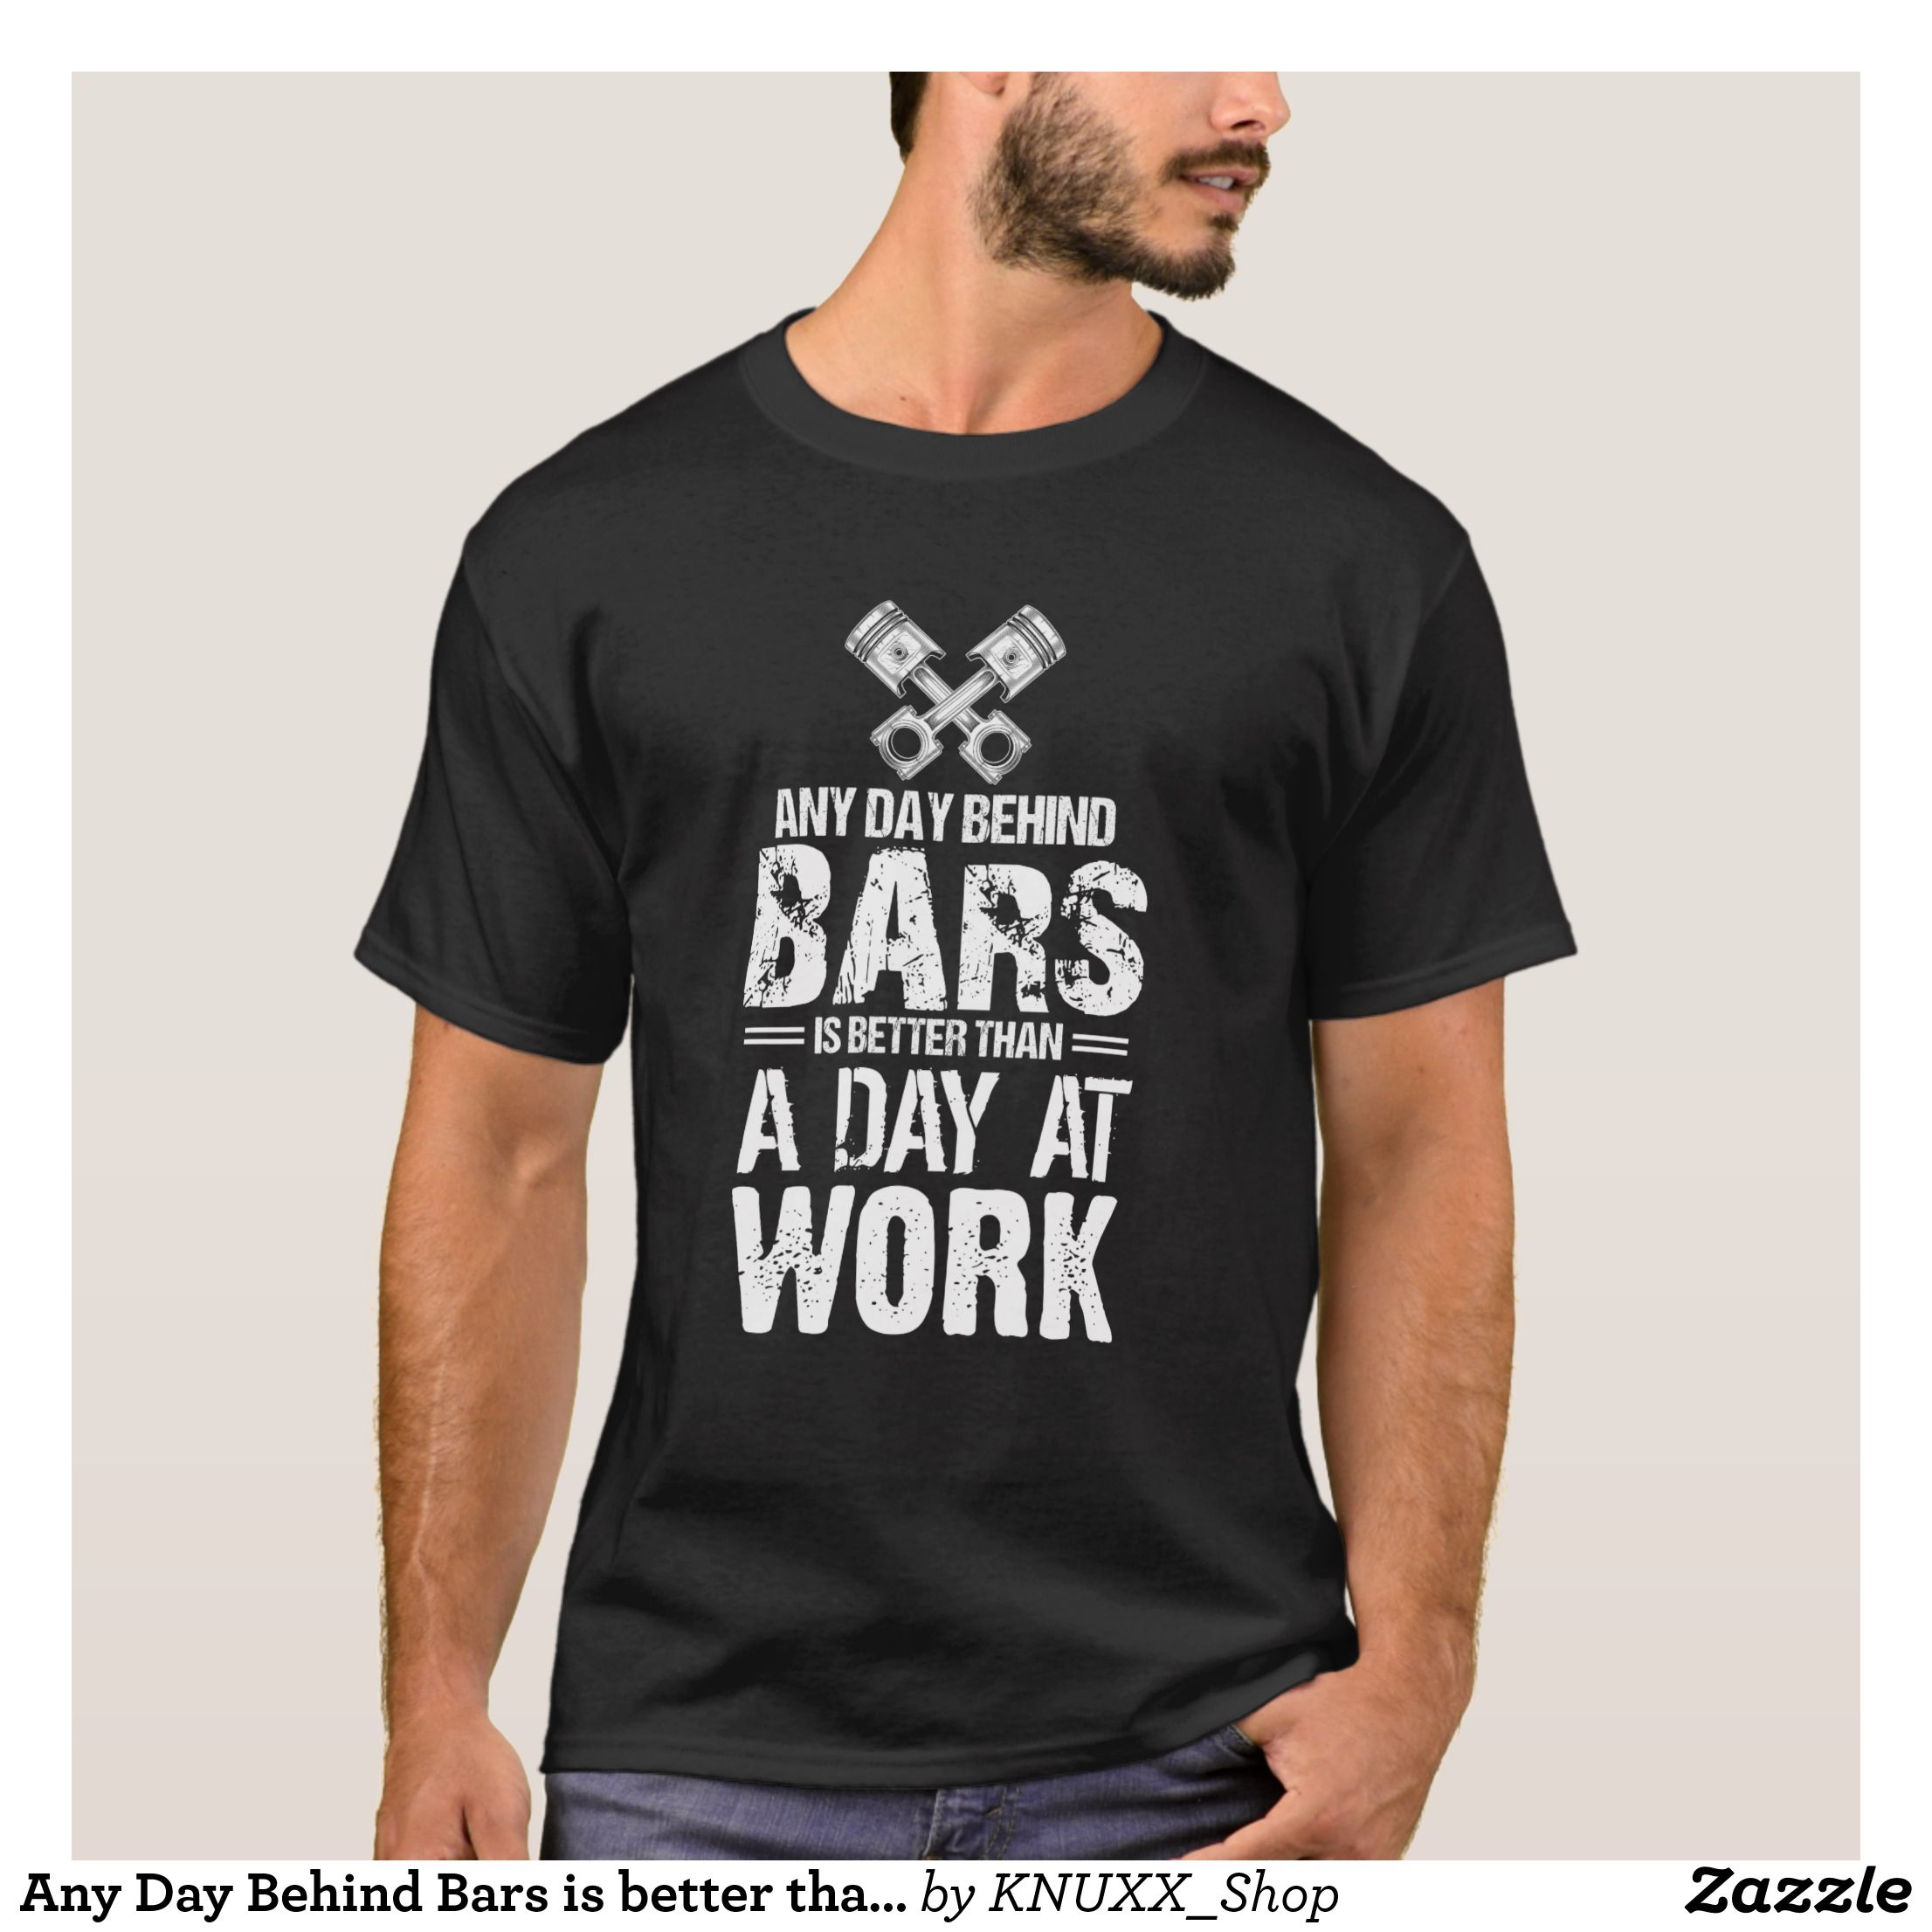 7f7f552eb Any Day Behind Bars is better than a day At Work T-Shirt - Heavyweight  Pre-Shrunk Shirts By Talented Fashion & Graphic Designers - #sweatshirts # shirts ...